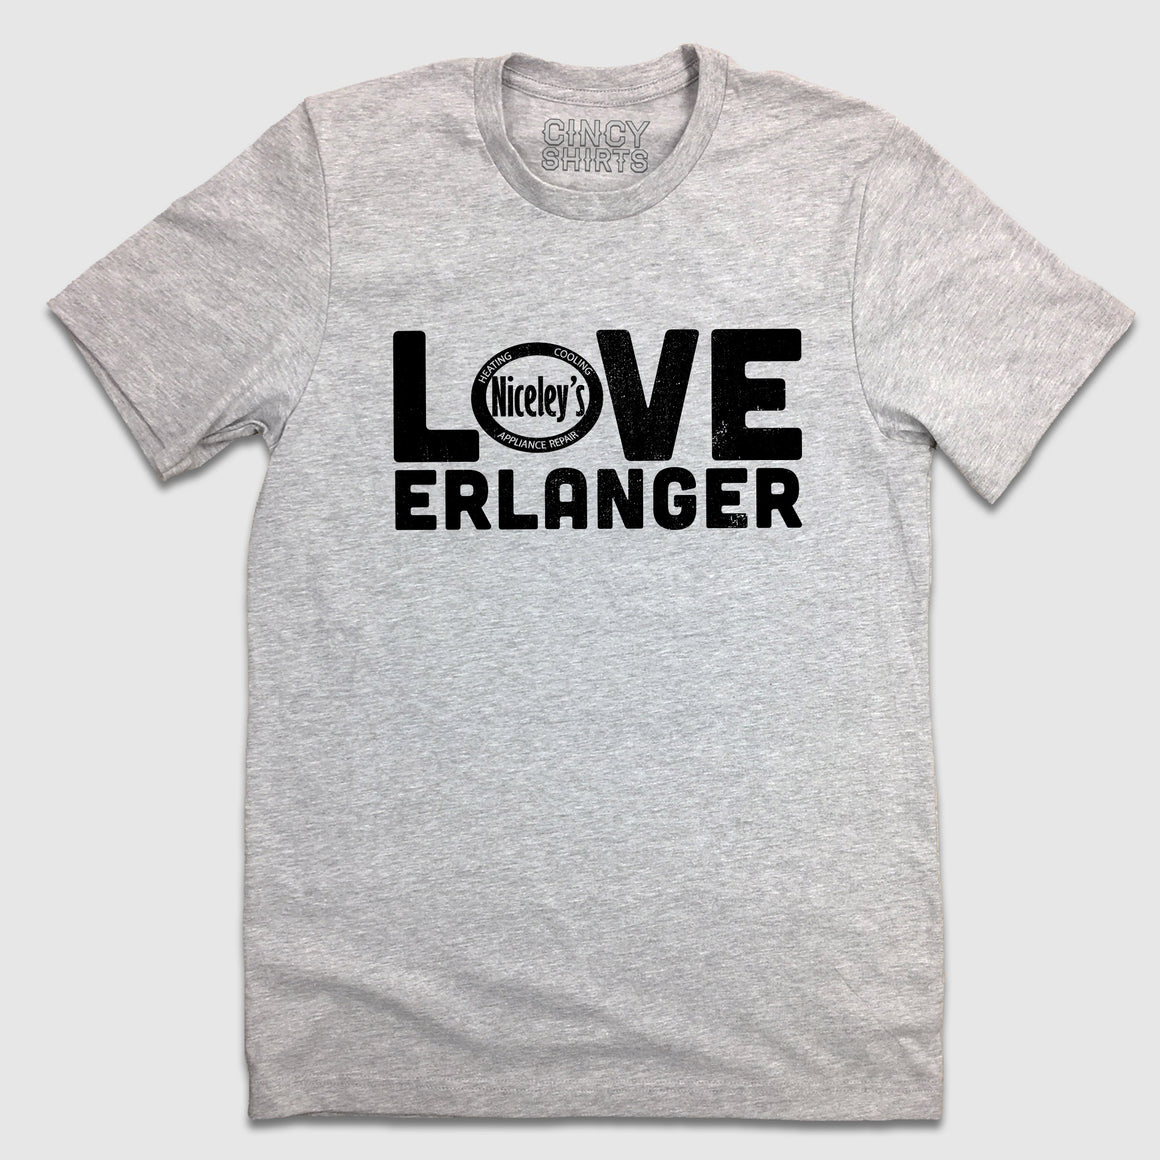 Love Erlanger - Niceley's Heating & Cooling